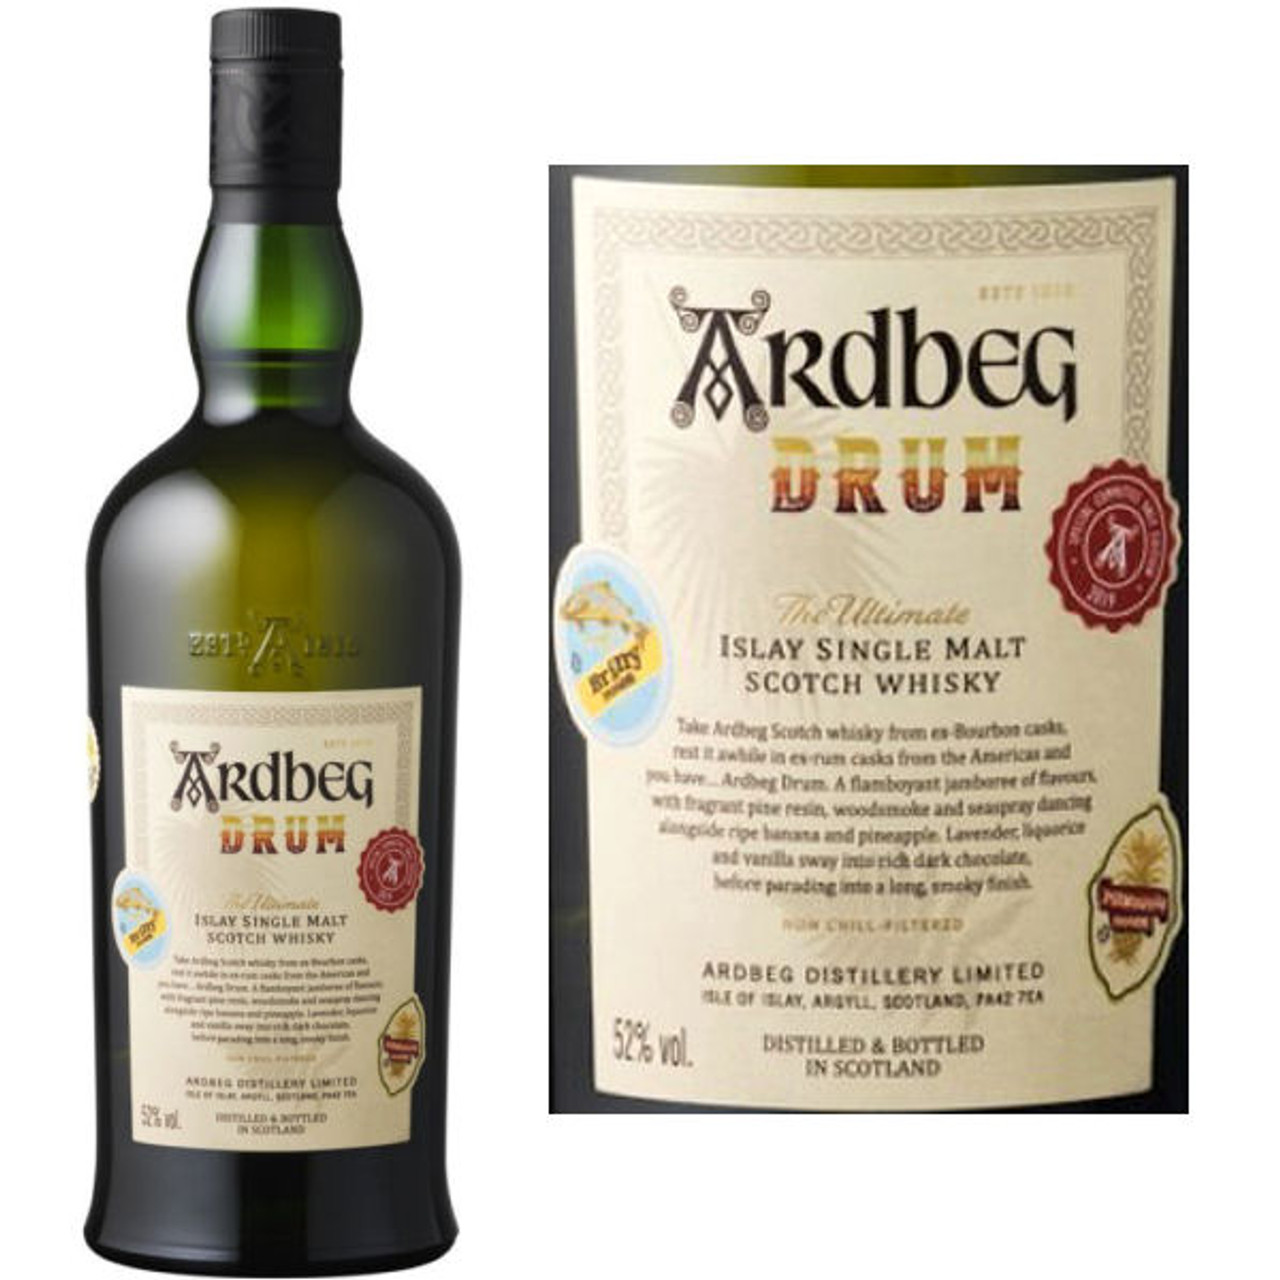 Ardbeg Drum Islay Single Malt Scotch 750ml